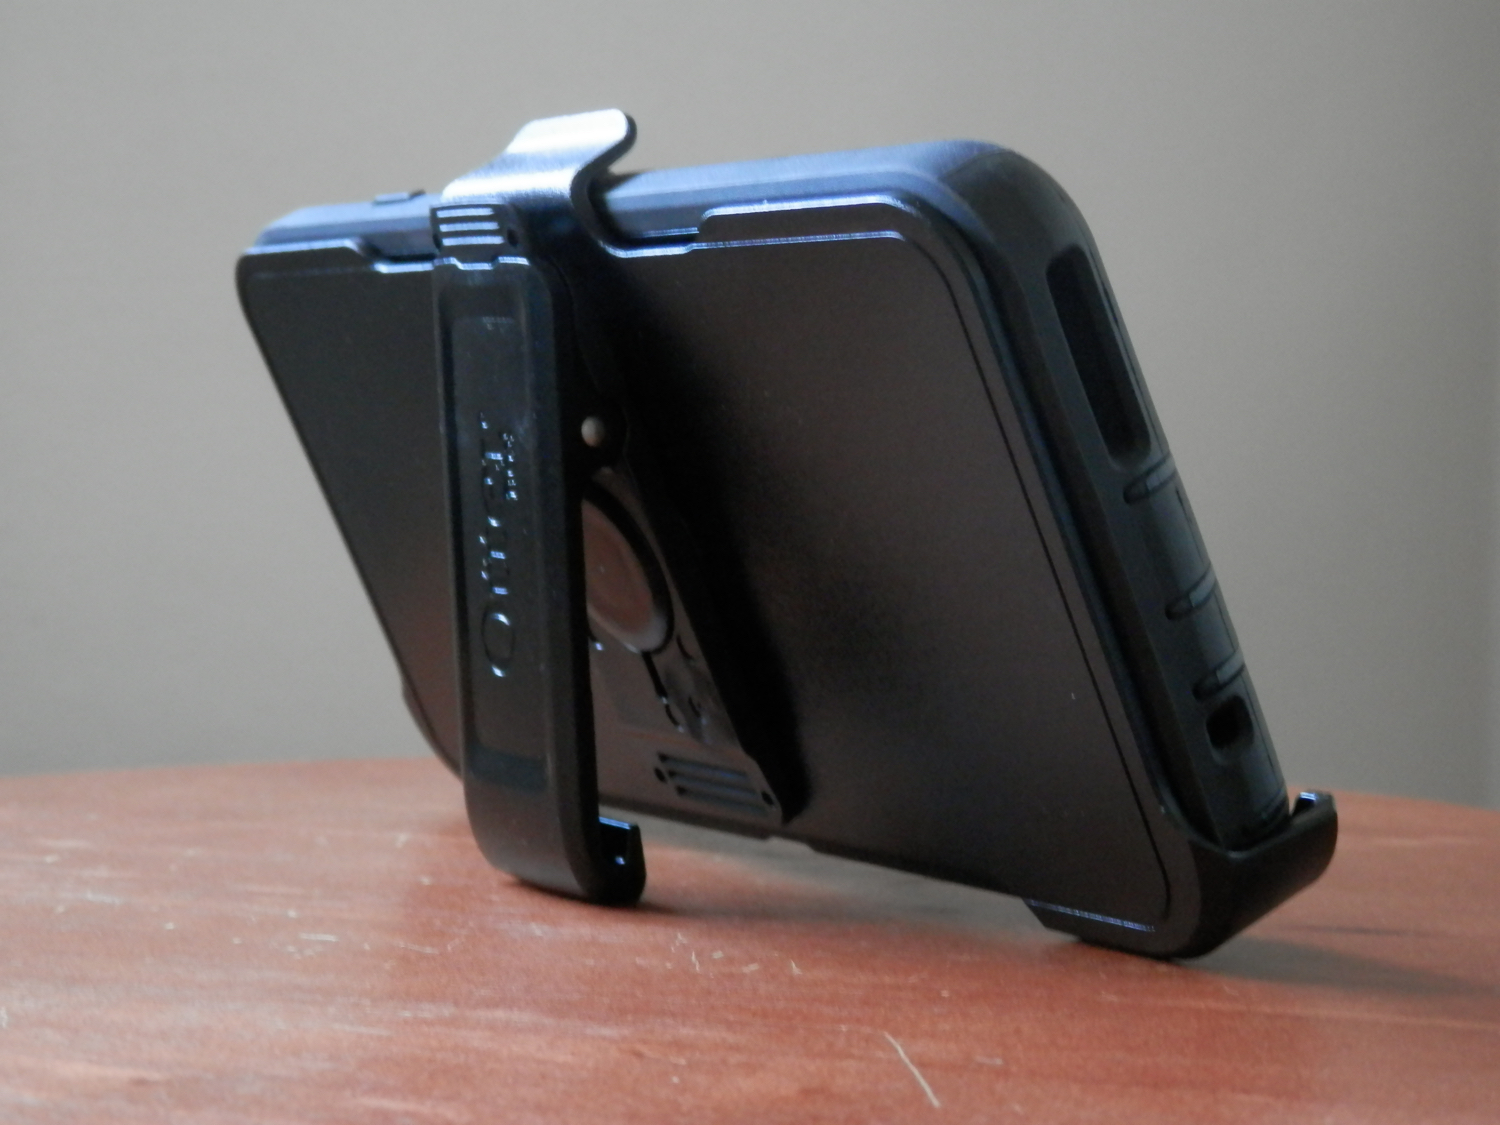 Otterbox Iphone Cases Shootout Which One Should You Get Defender Series New Ipad Black Kickstand Back